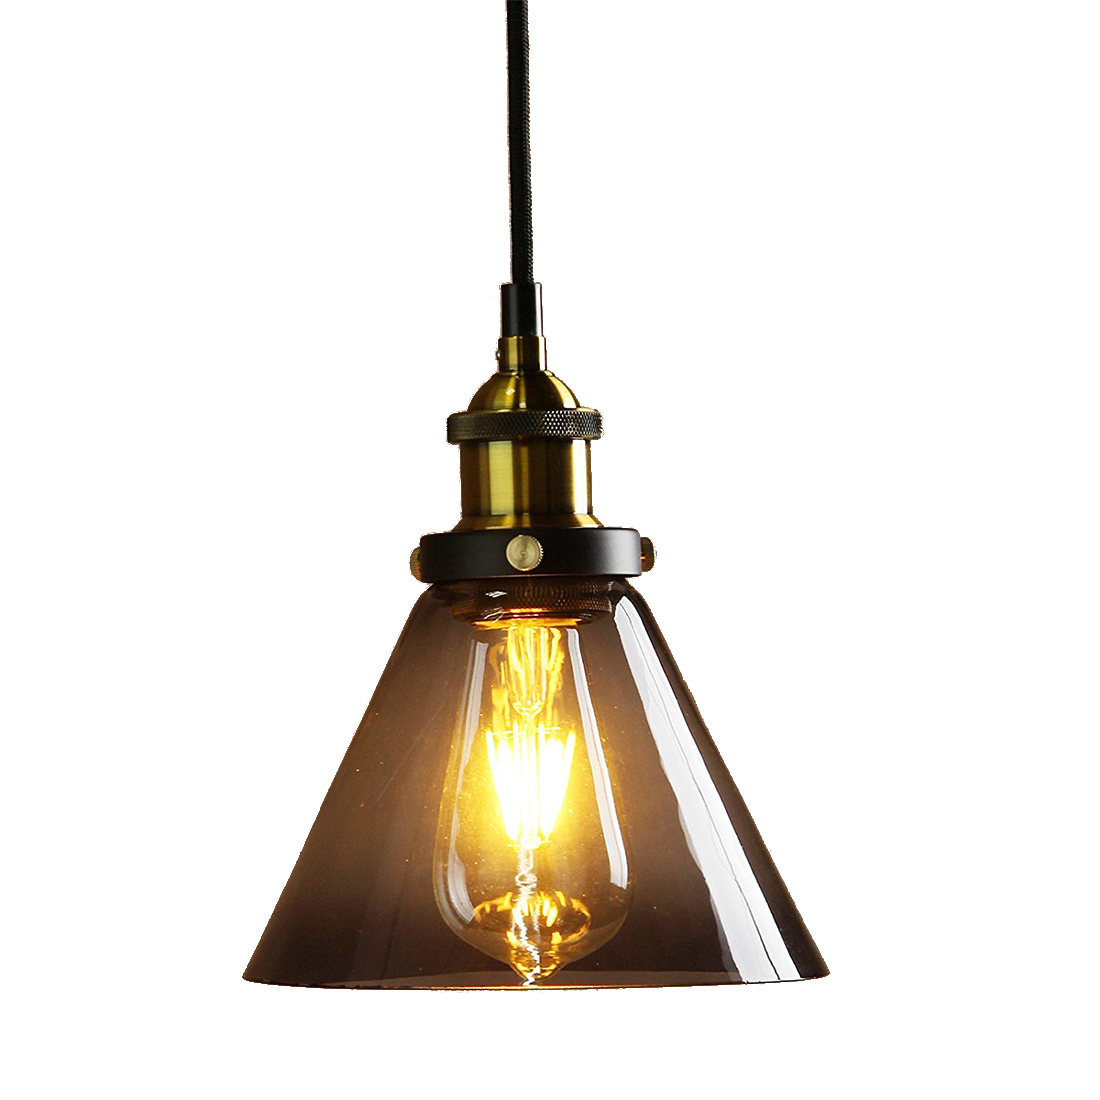 купить Vintage Industrial Metal Finish Black Gray Glass Shade Loft Pendant Lamp Retro Vintage Light fitting недорого